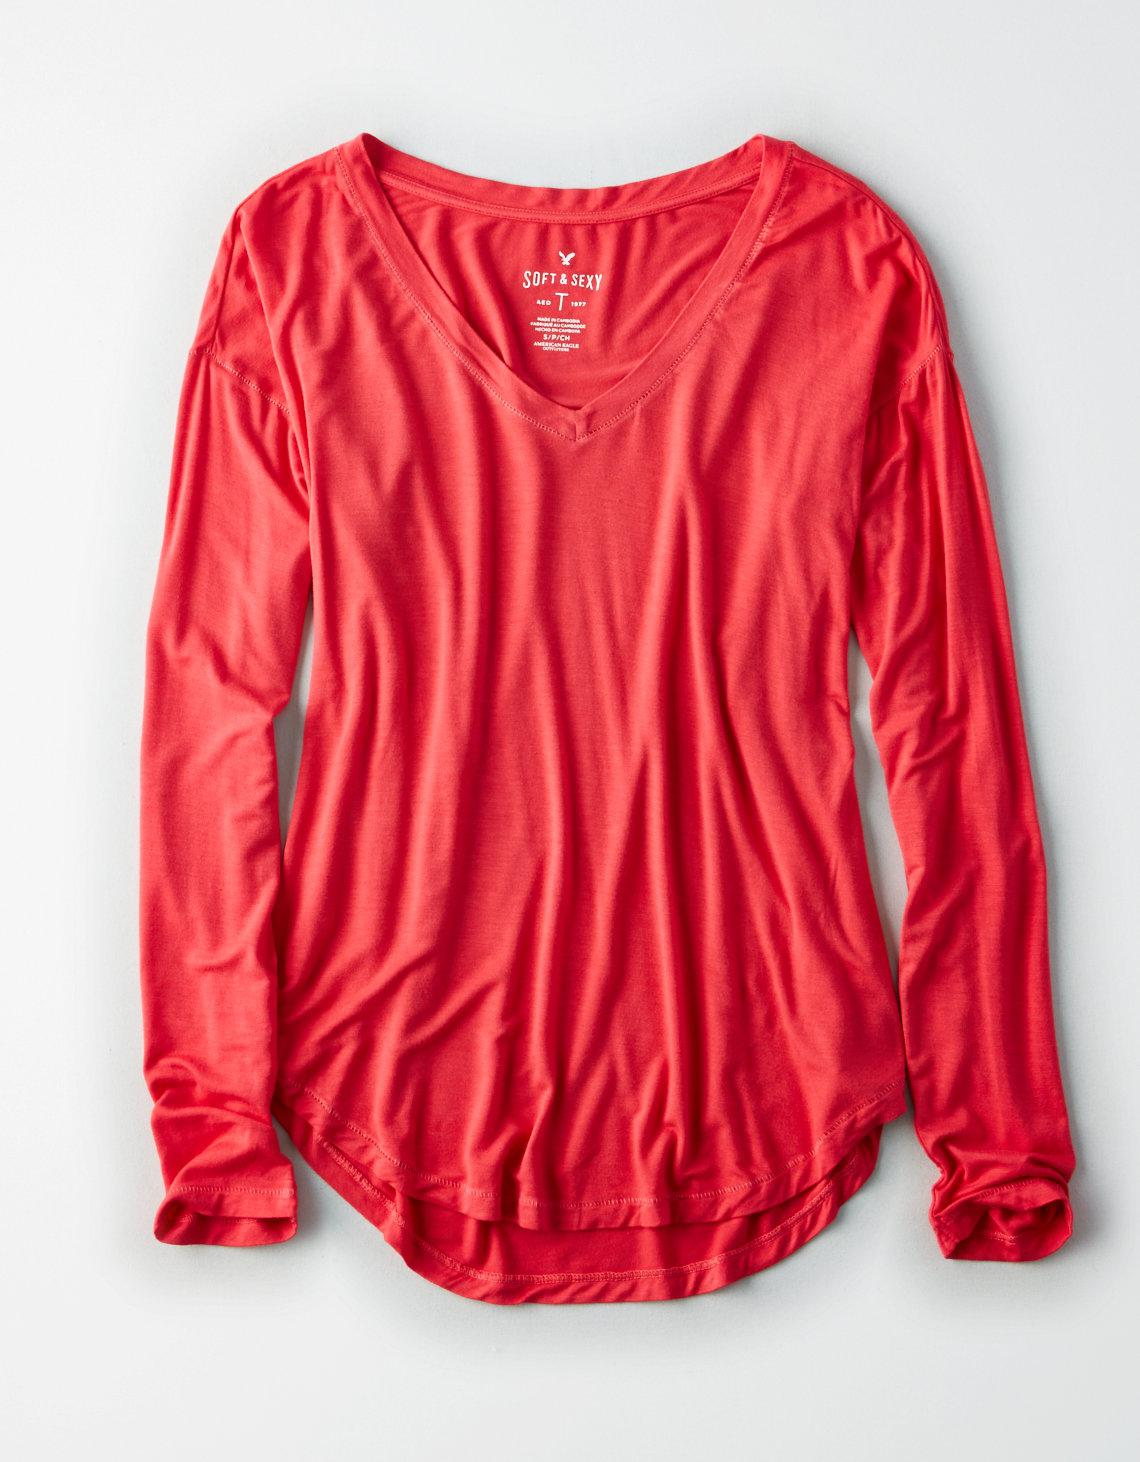 7ca963a0305 American Eagle Ae Soft & Sexy Long-sleeve Favorite T-shirt in Red - Lyst